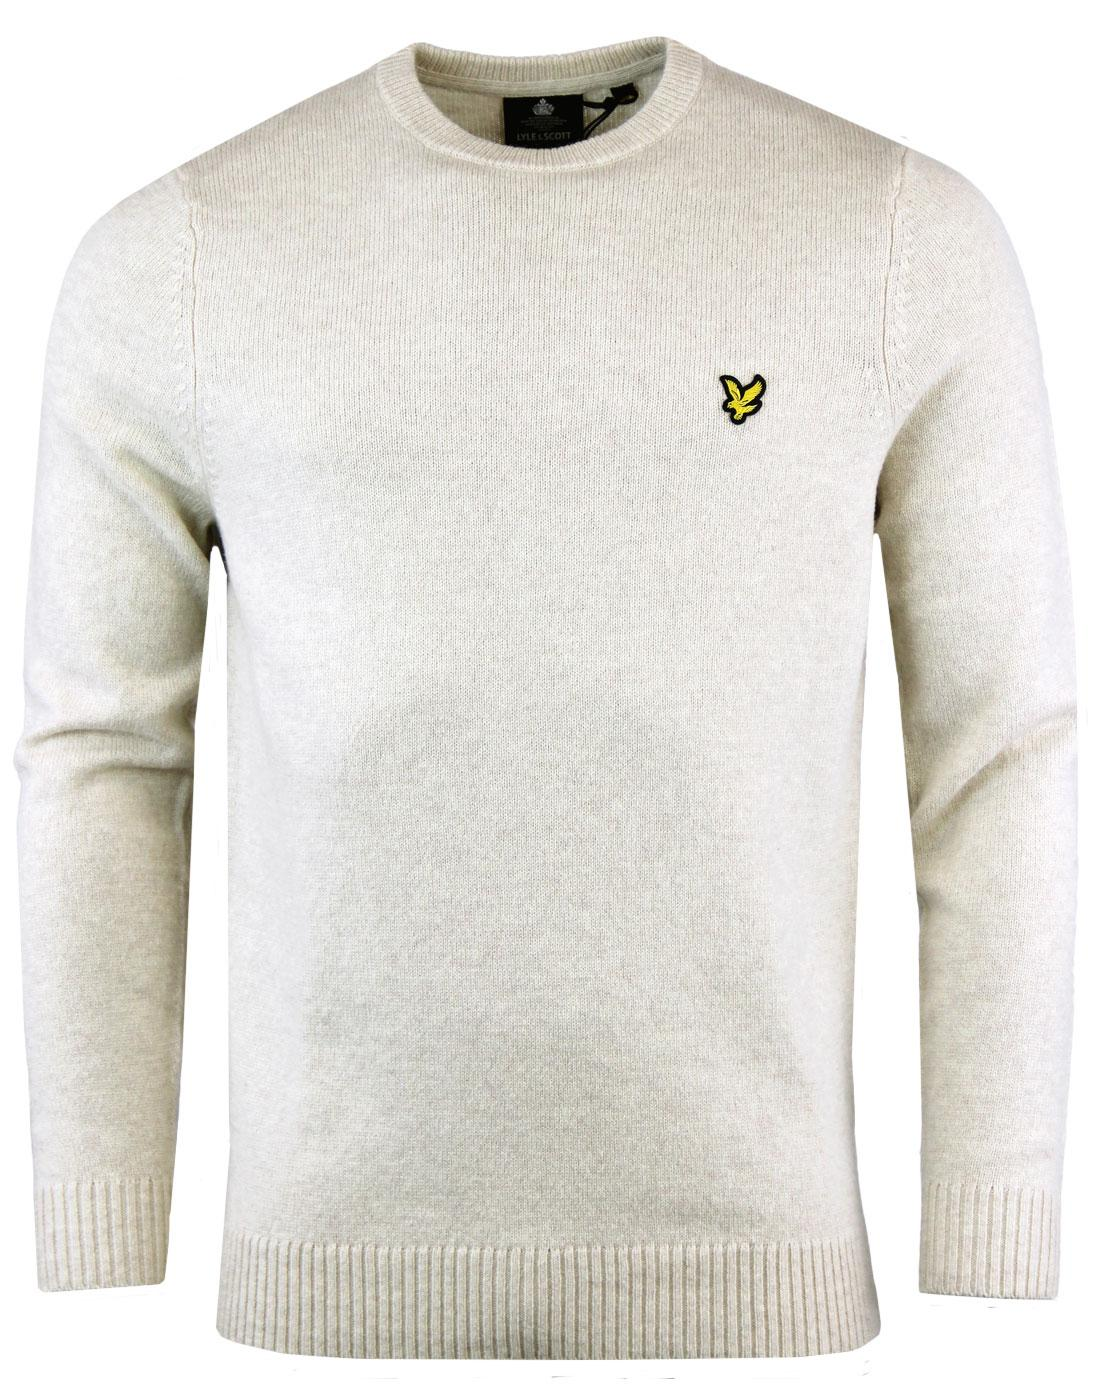 LYLE & SCOTT Mod Lambswool Blend Jumper SANDY MARL